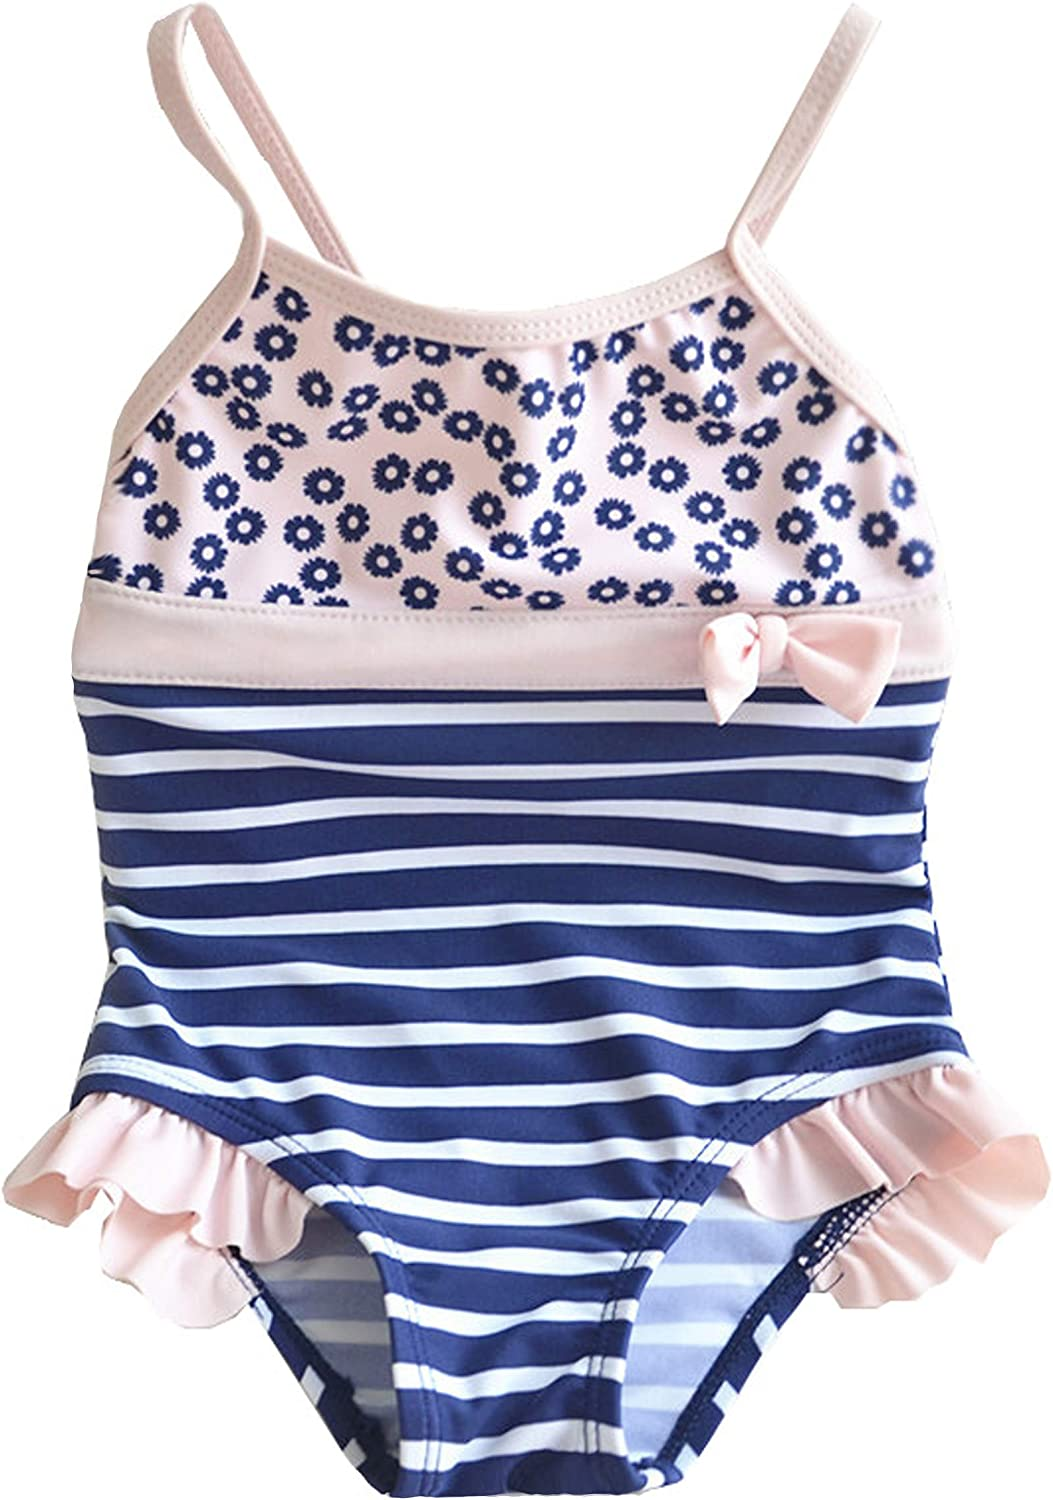 Hiheart Girls One-Piece Swimsuit Max 75% OFF UPF Bathing Suit 50+ Max 76% OFF Beach